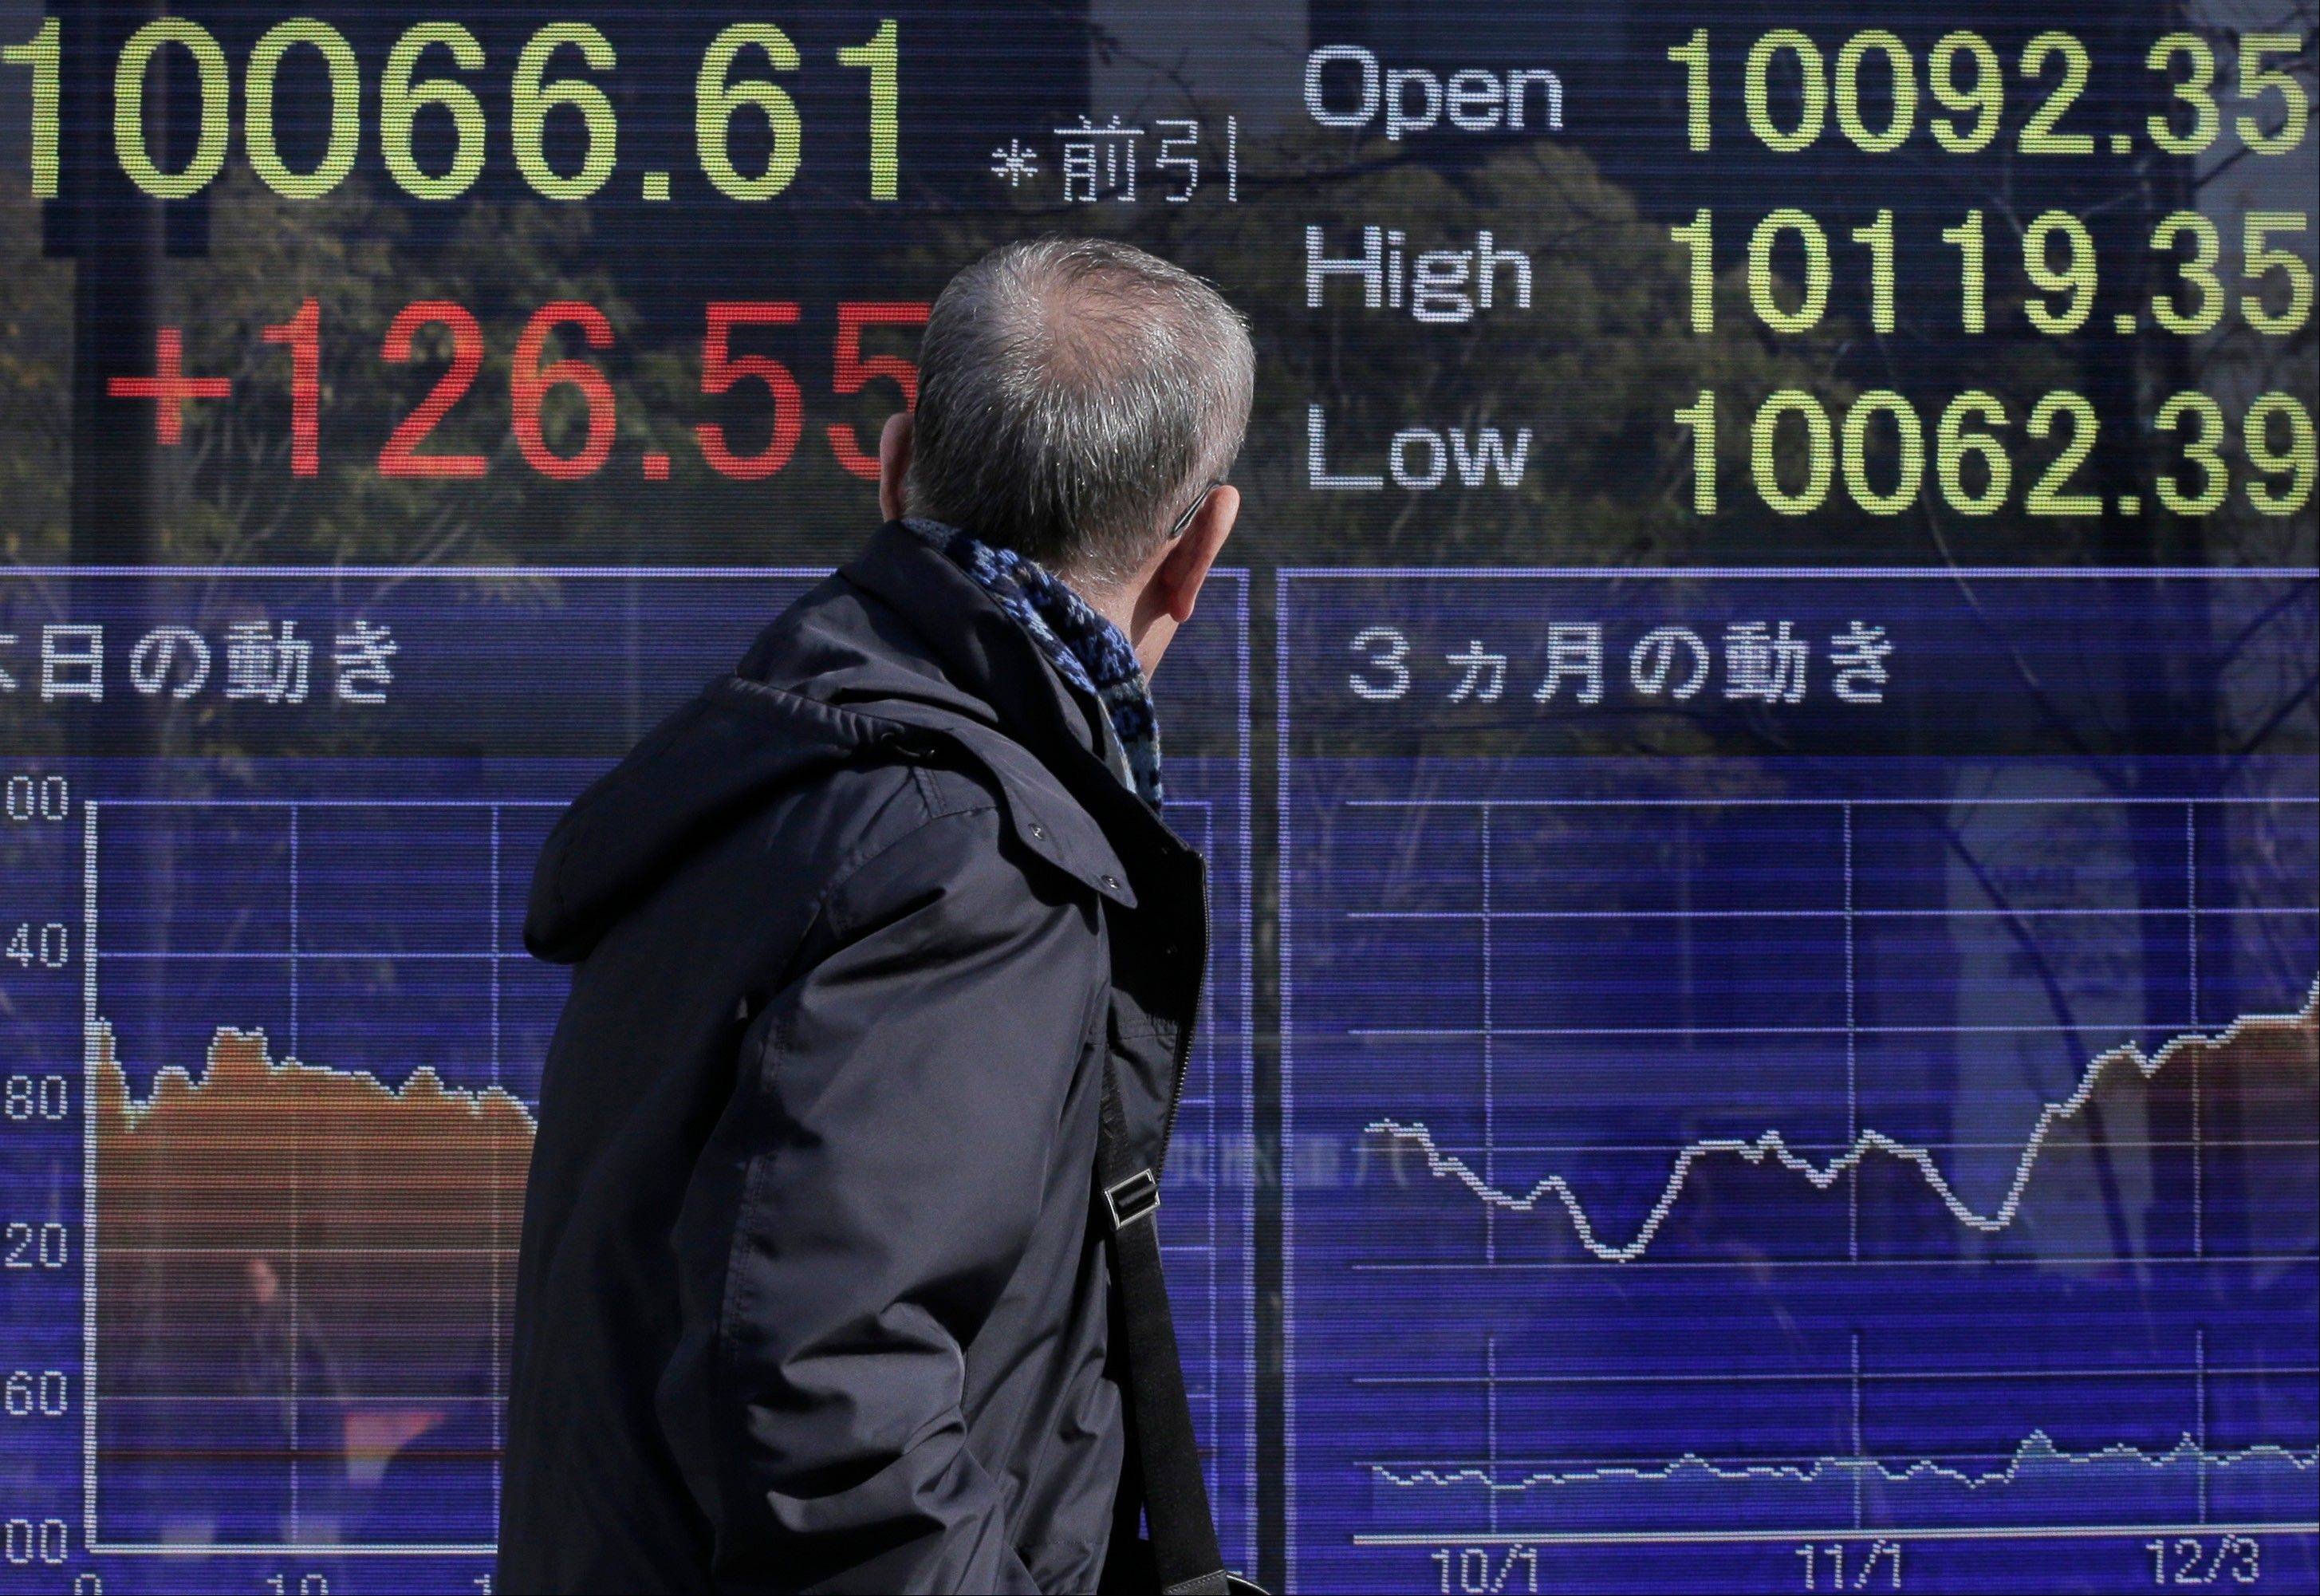 A man walks in front of the electronic stock board of a securities firm showing Japan's Nikkei 225 index that rose 126.55 points to 10,066.61 in Tokyo Tuesday.